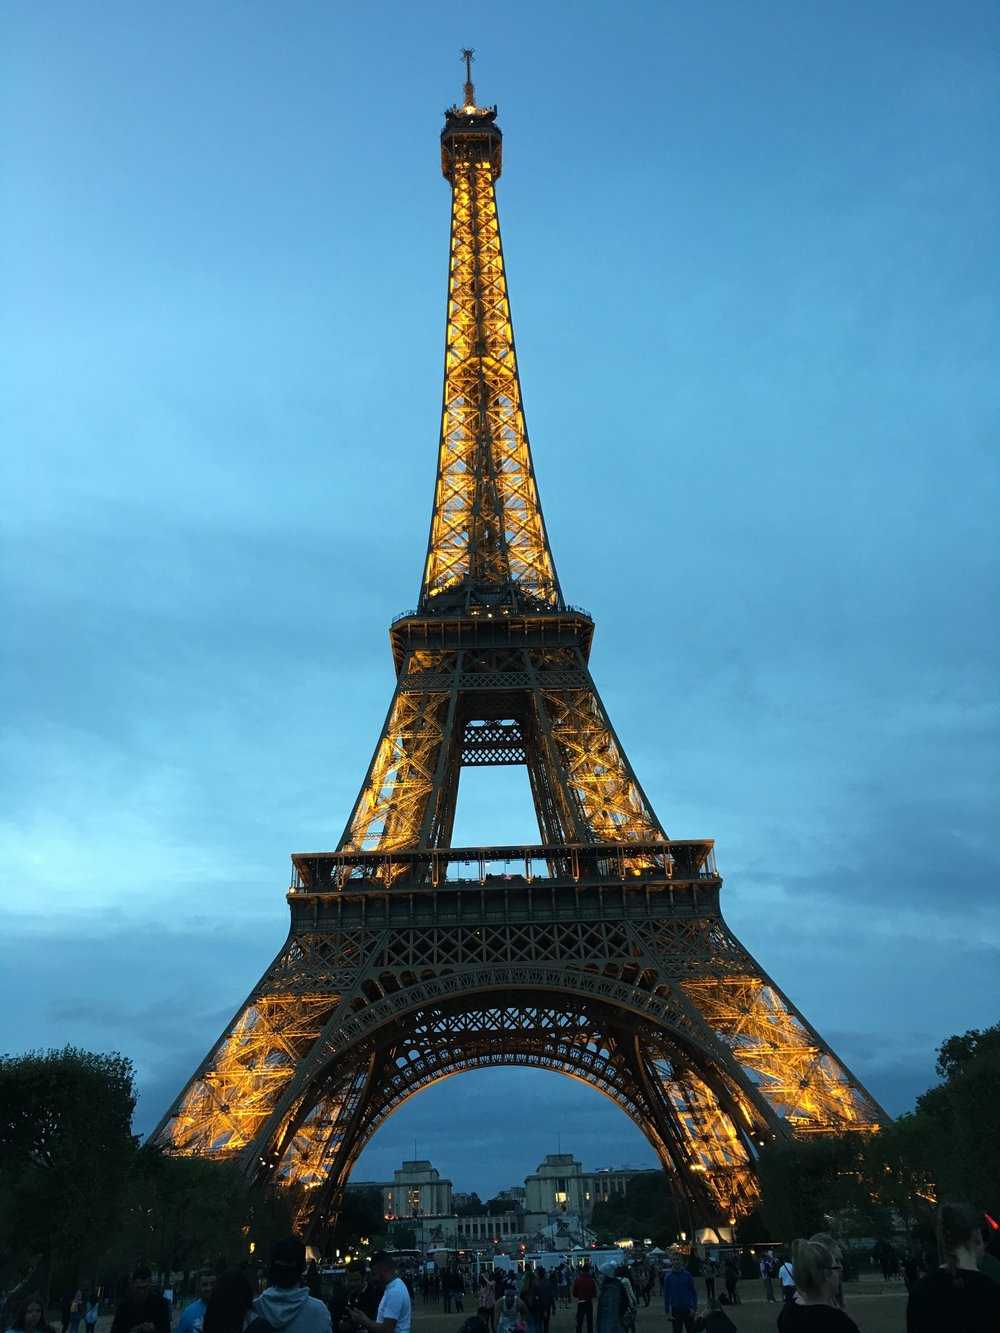 The Eiffel Tower sparkles starting at 7 pm every hour on the hour for 10 minutes.